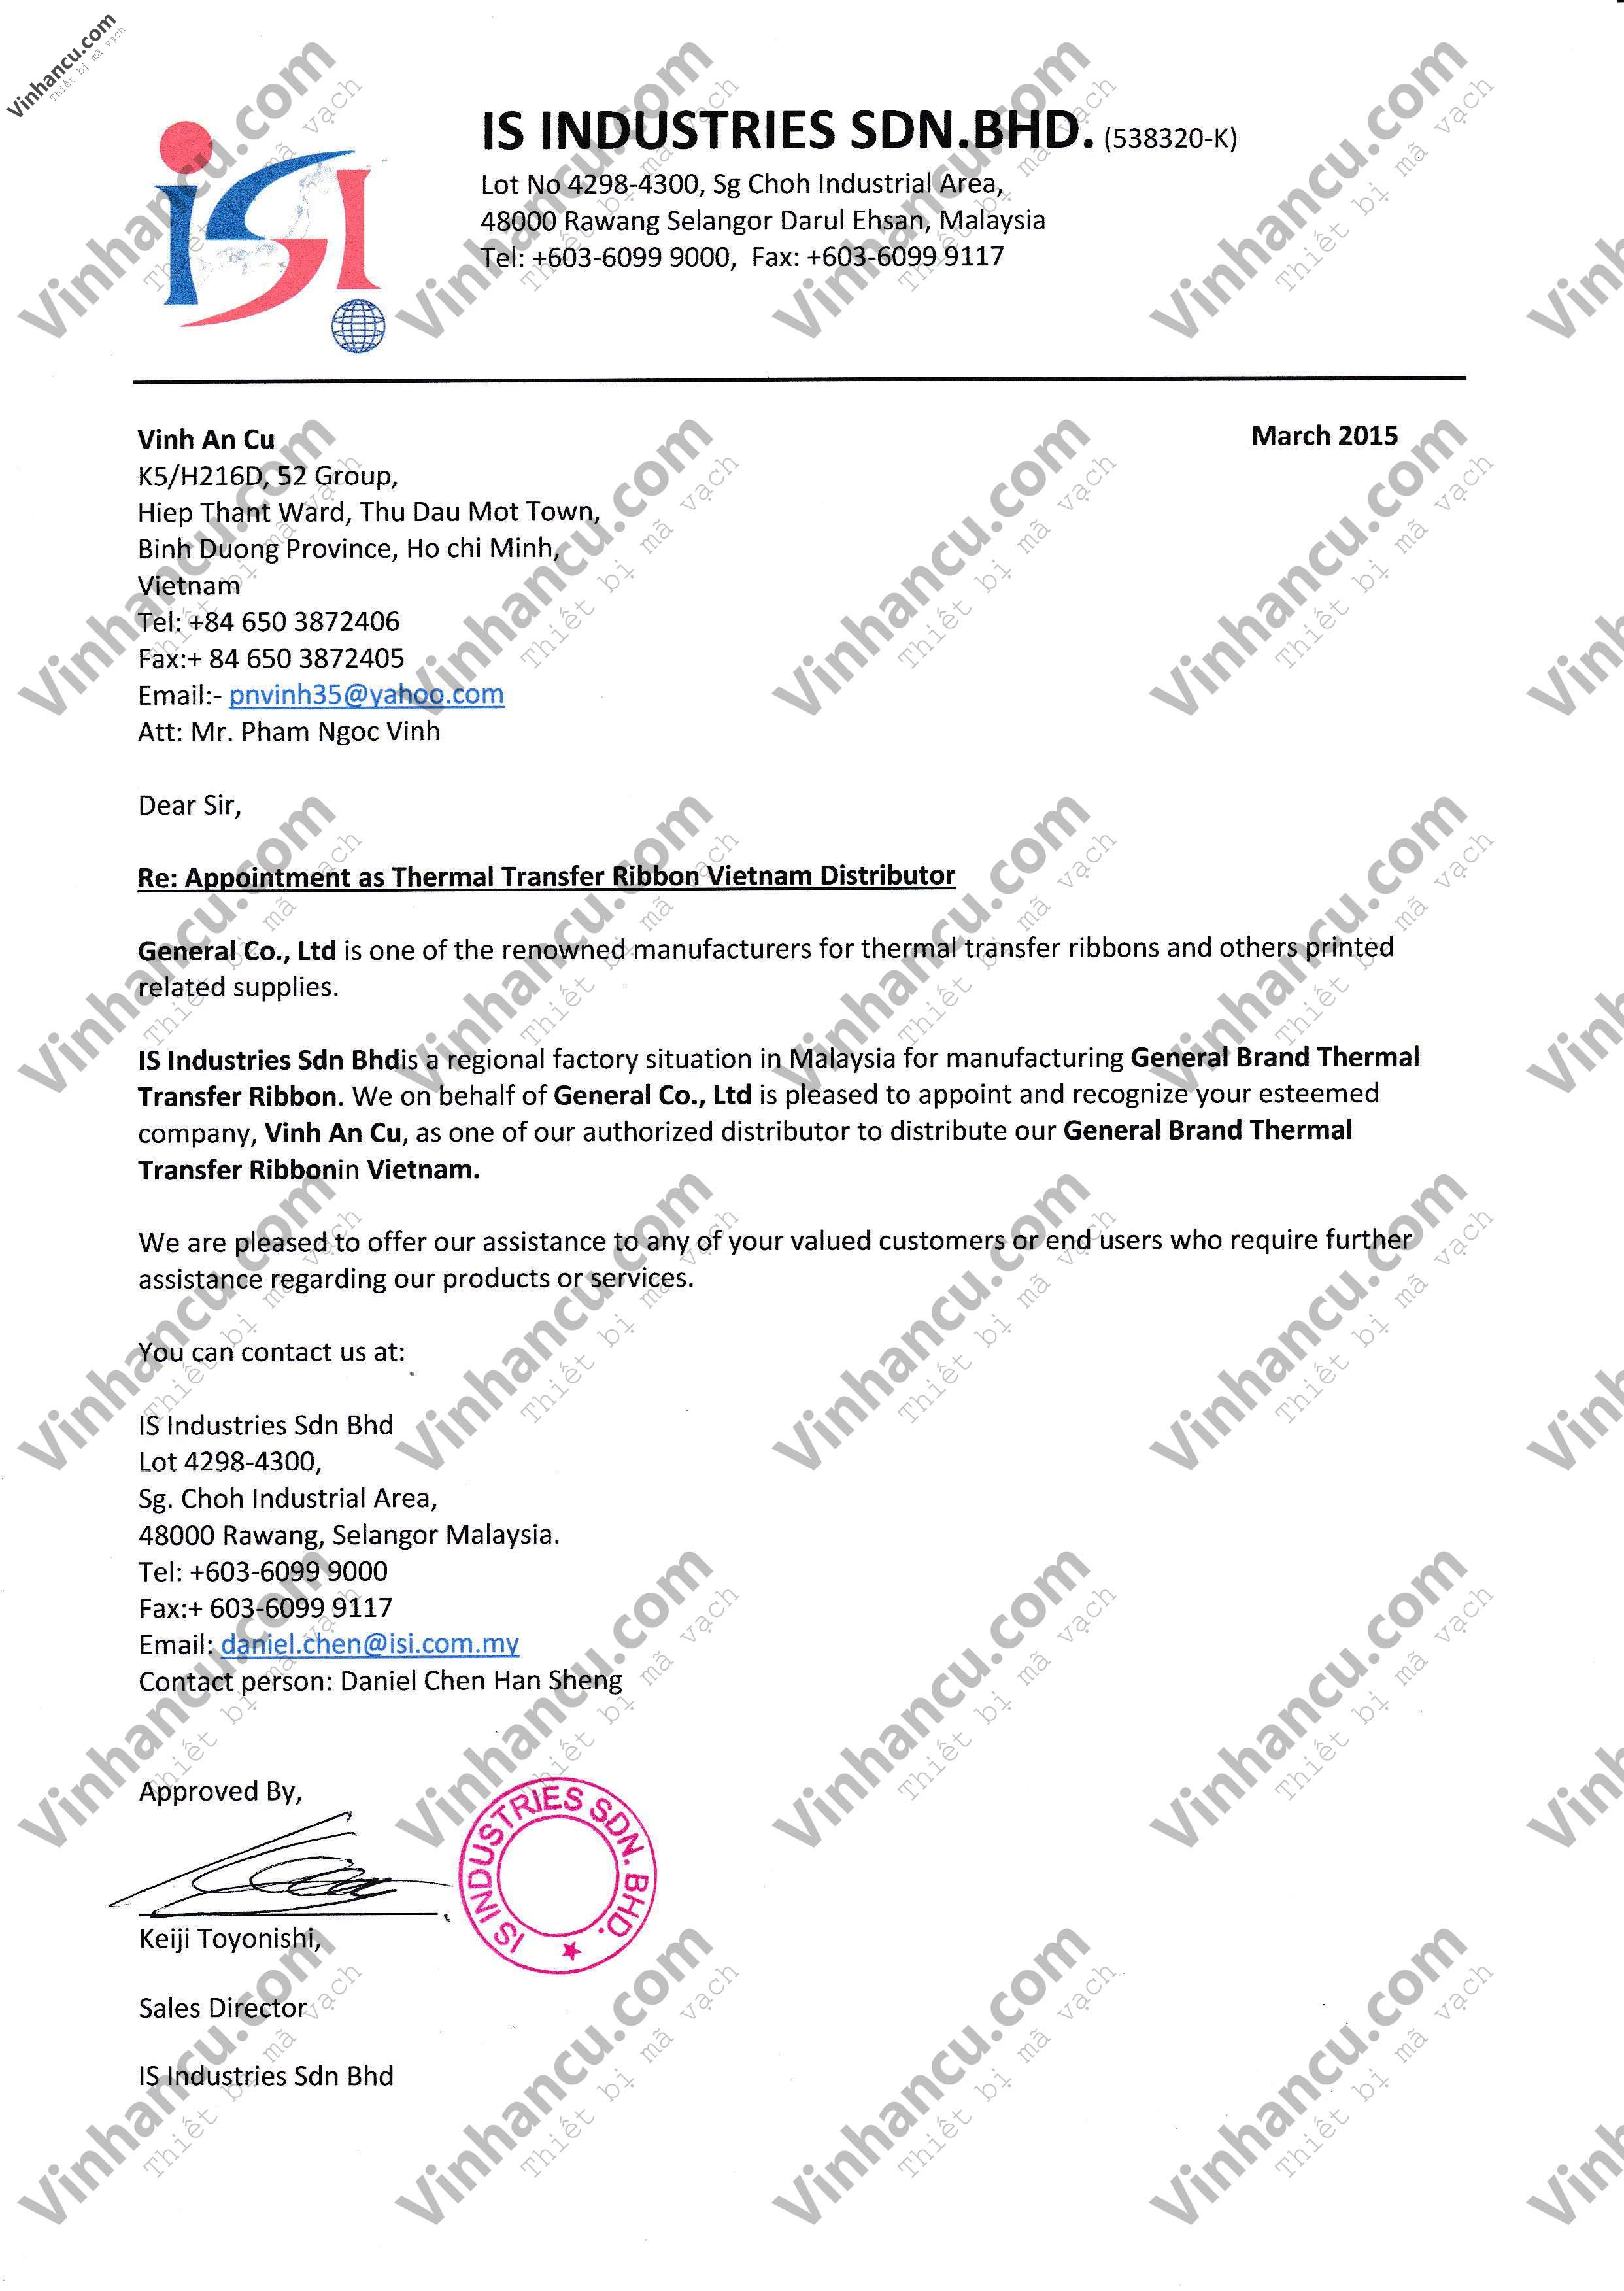 General Appointment letter for Vinh An Cu